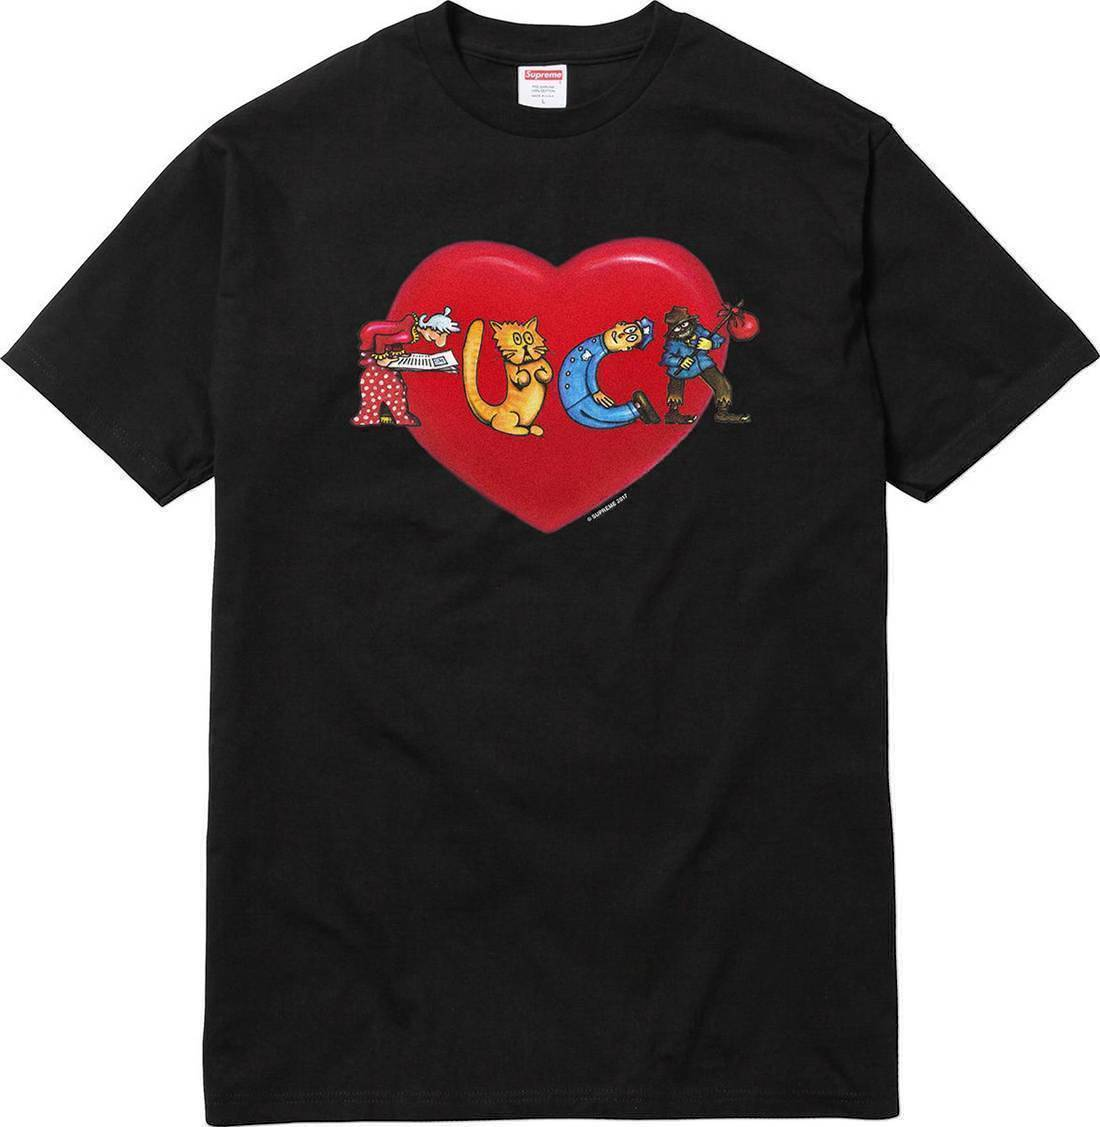 Supreme 17F/W F*ck Love Heart Tee Black